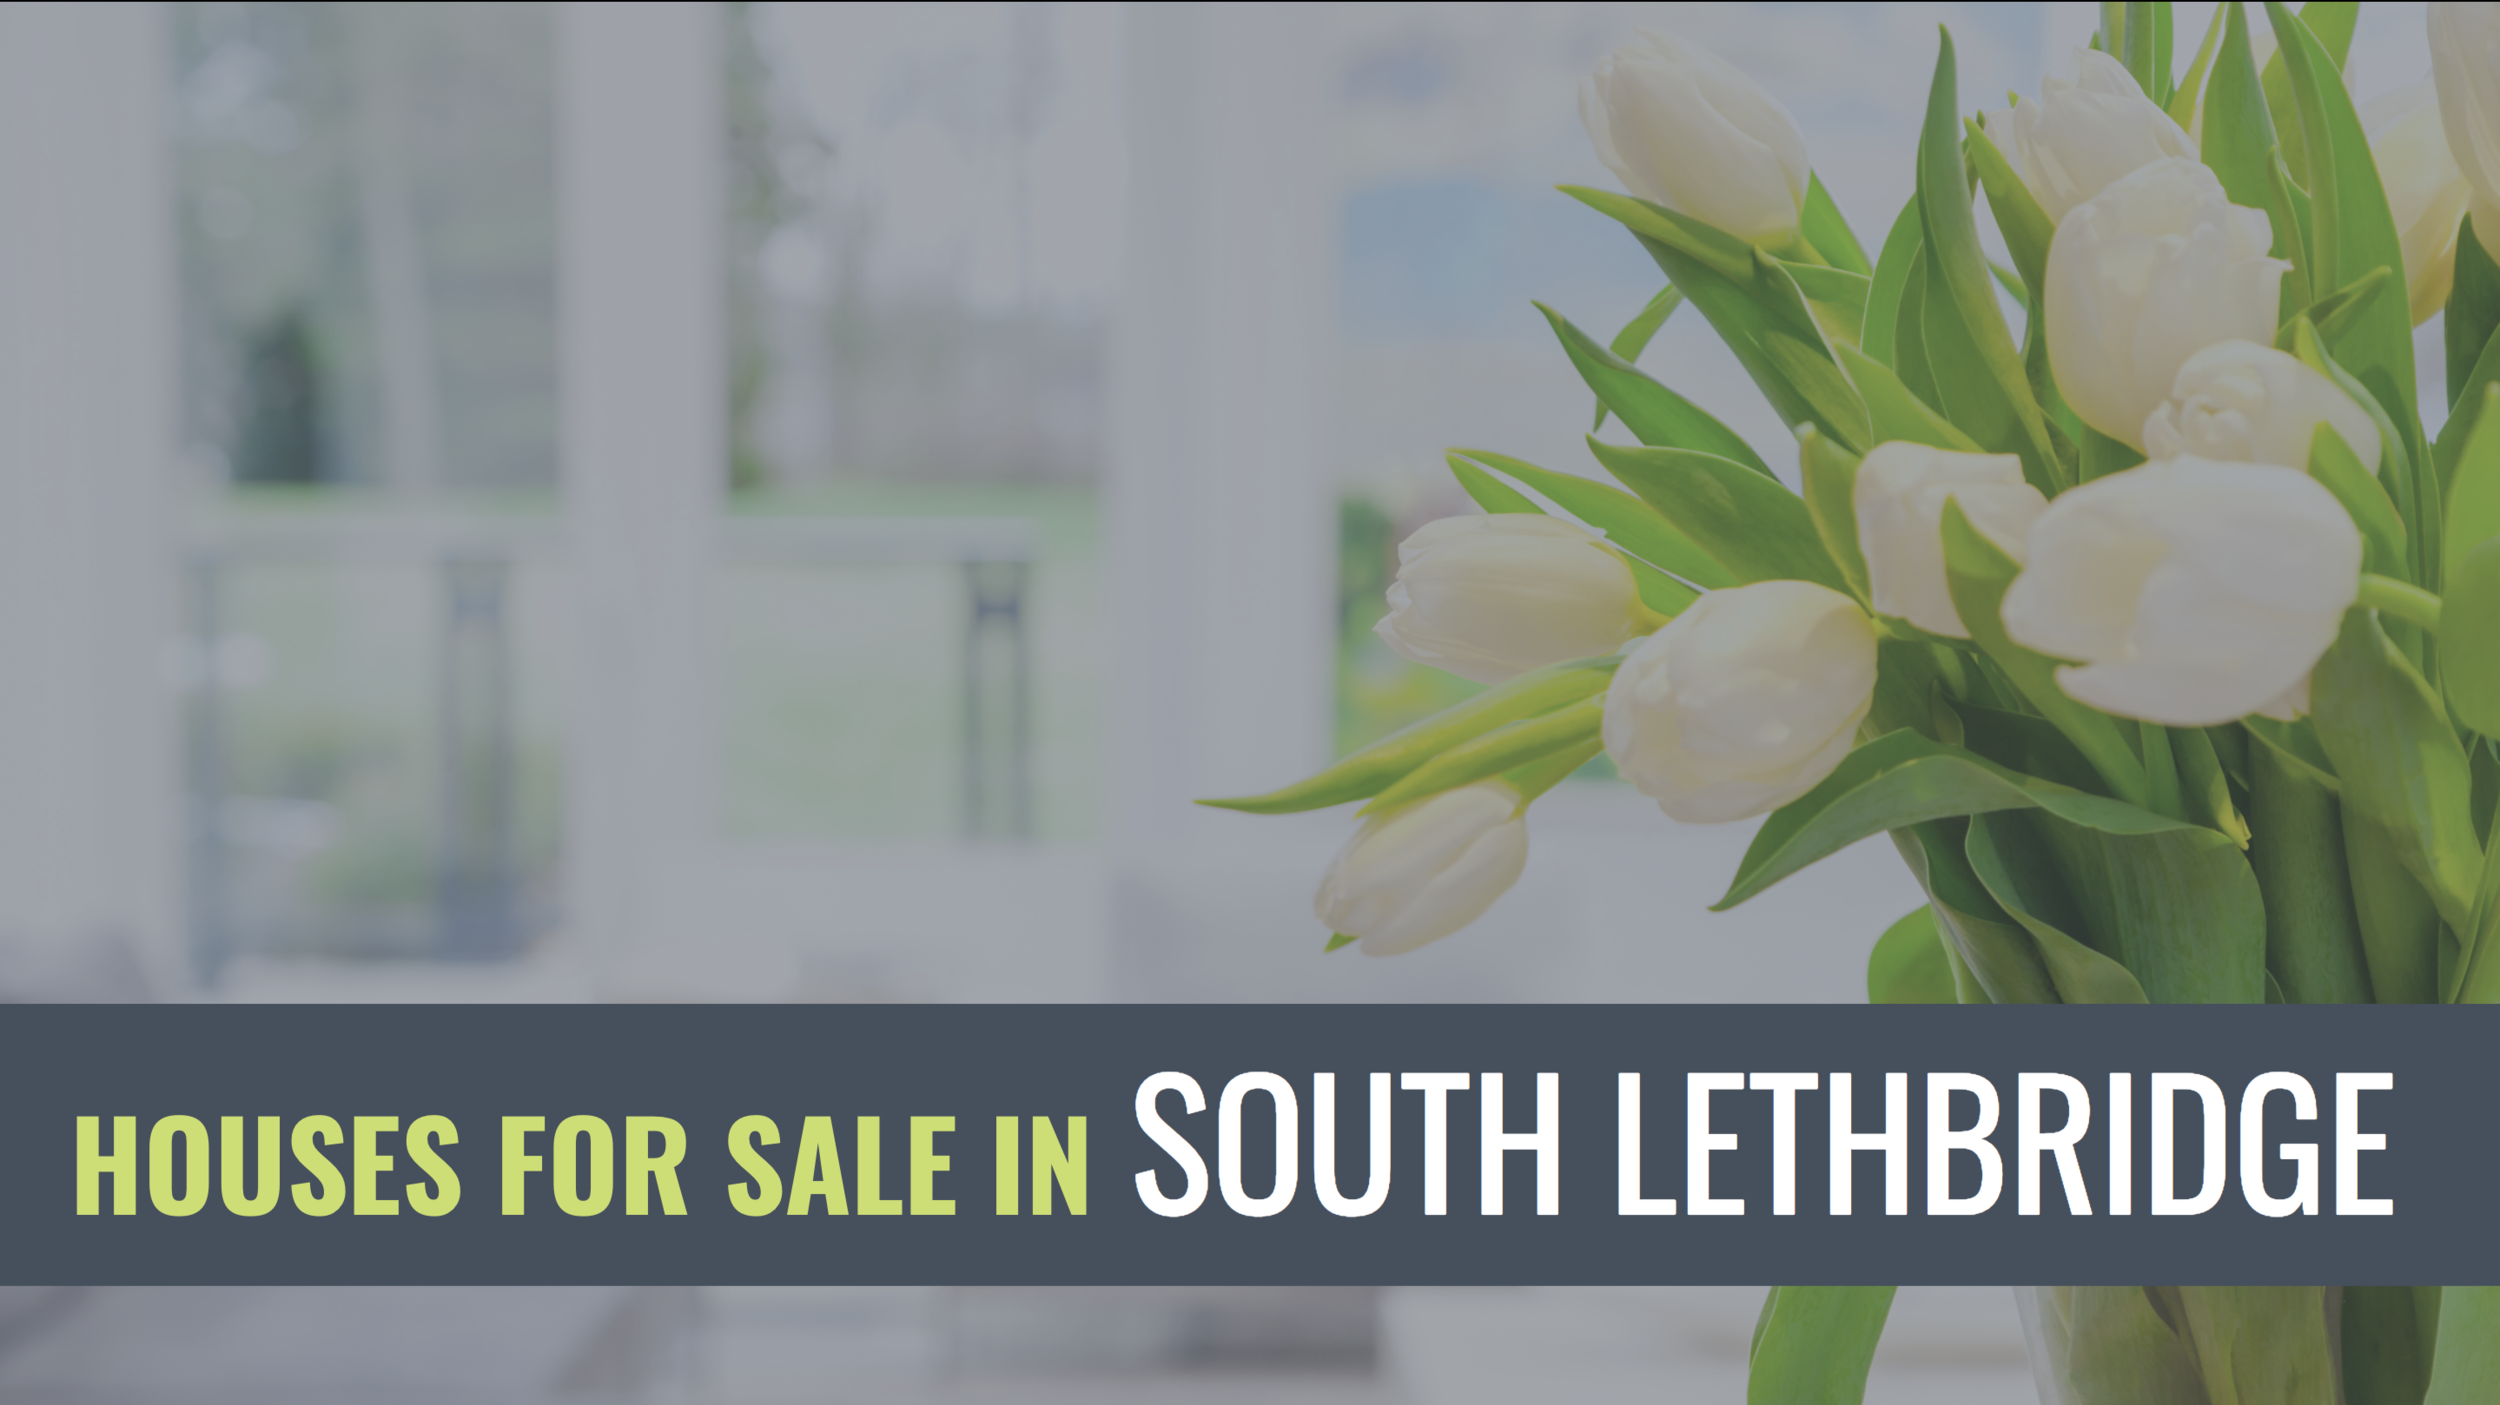 Houses For Sale In South Lethbridge.png